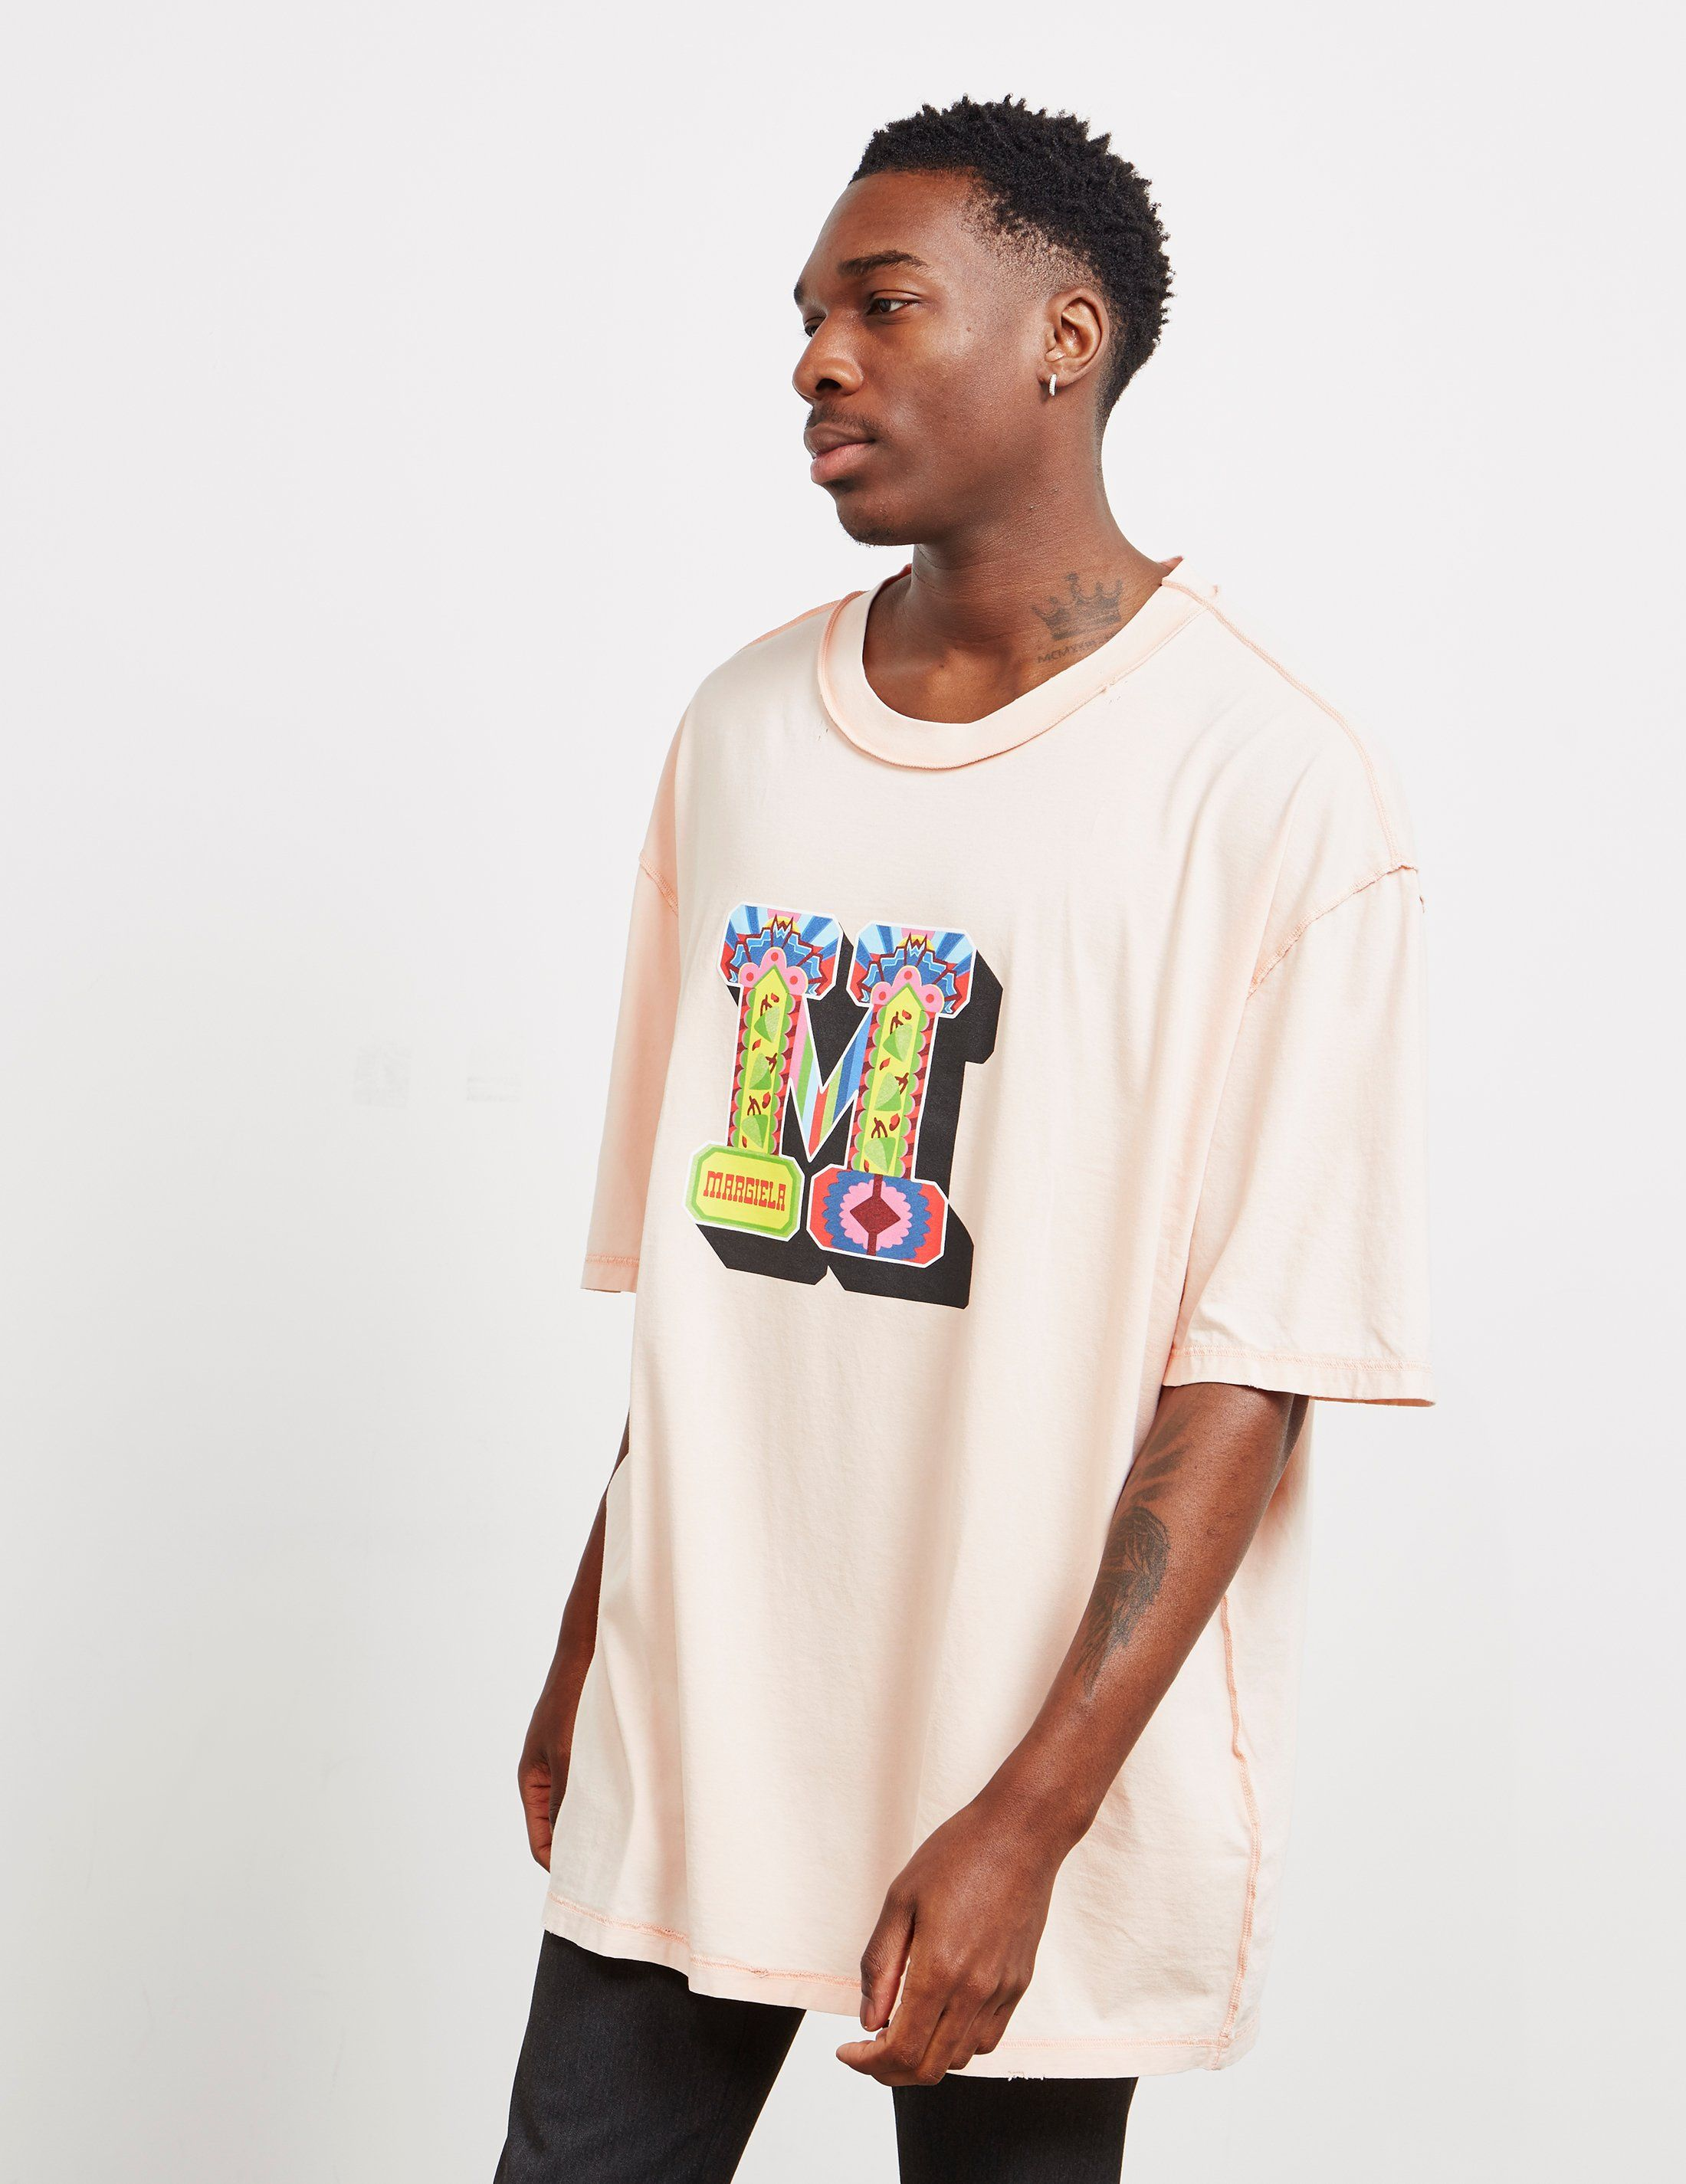 Maison Margiela Retro Short Sleeve T-Shirt - Online Exclusive